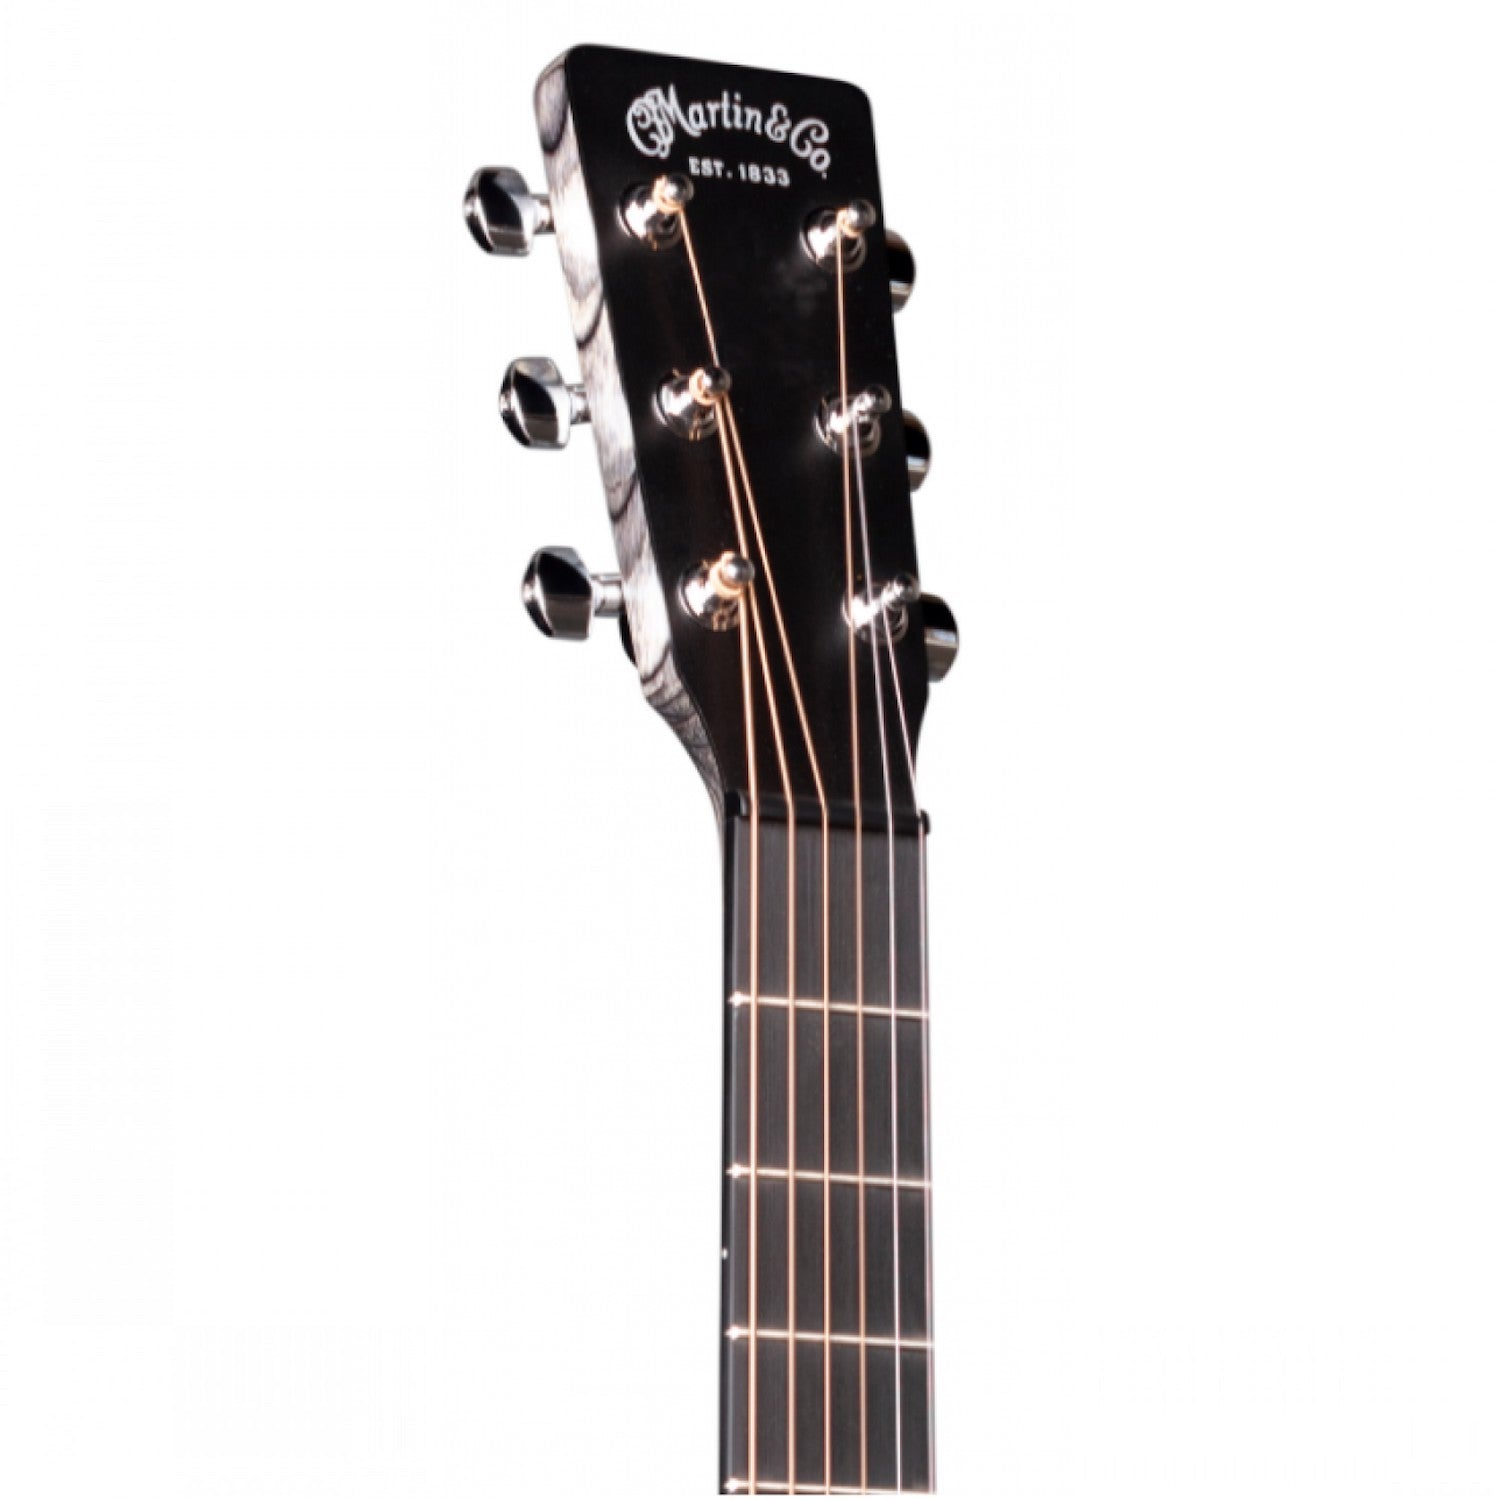 Martin & Co. DX Johnny Cash X-Series Signature Edition Guitar